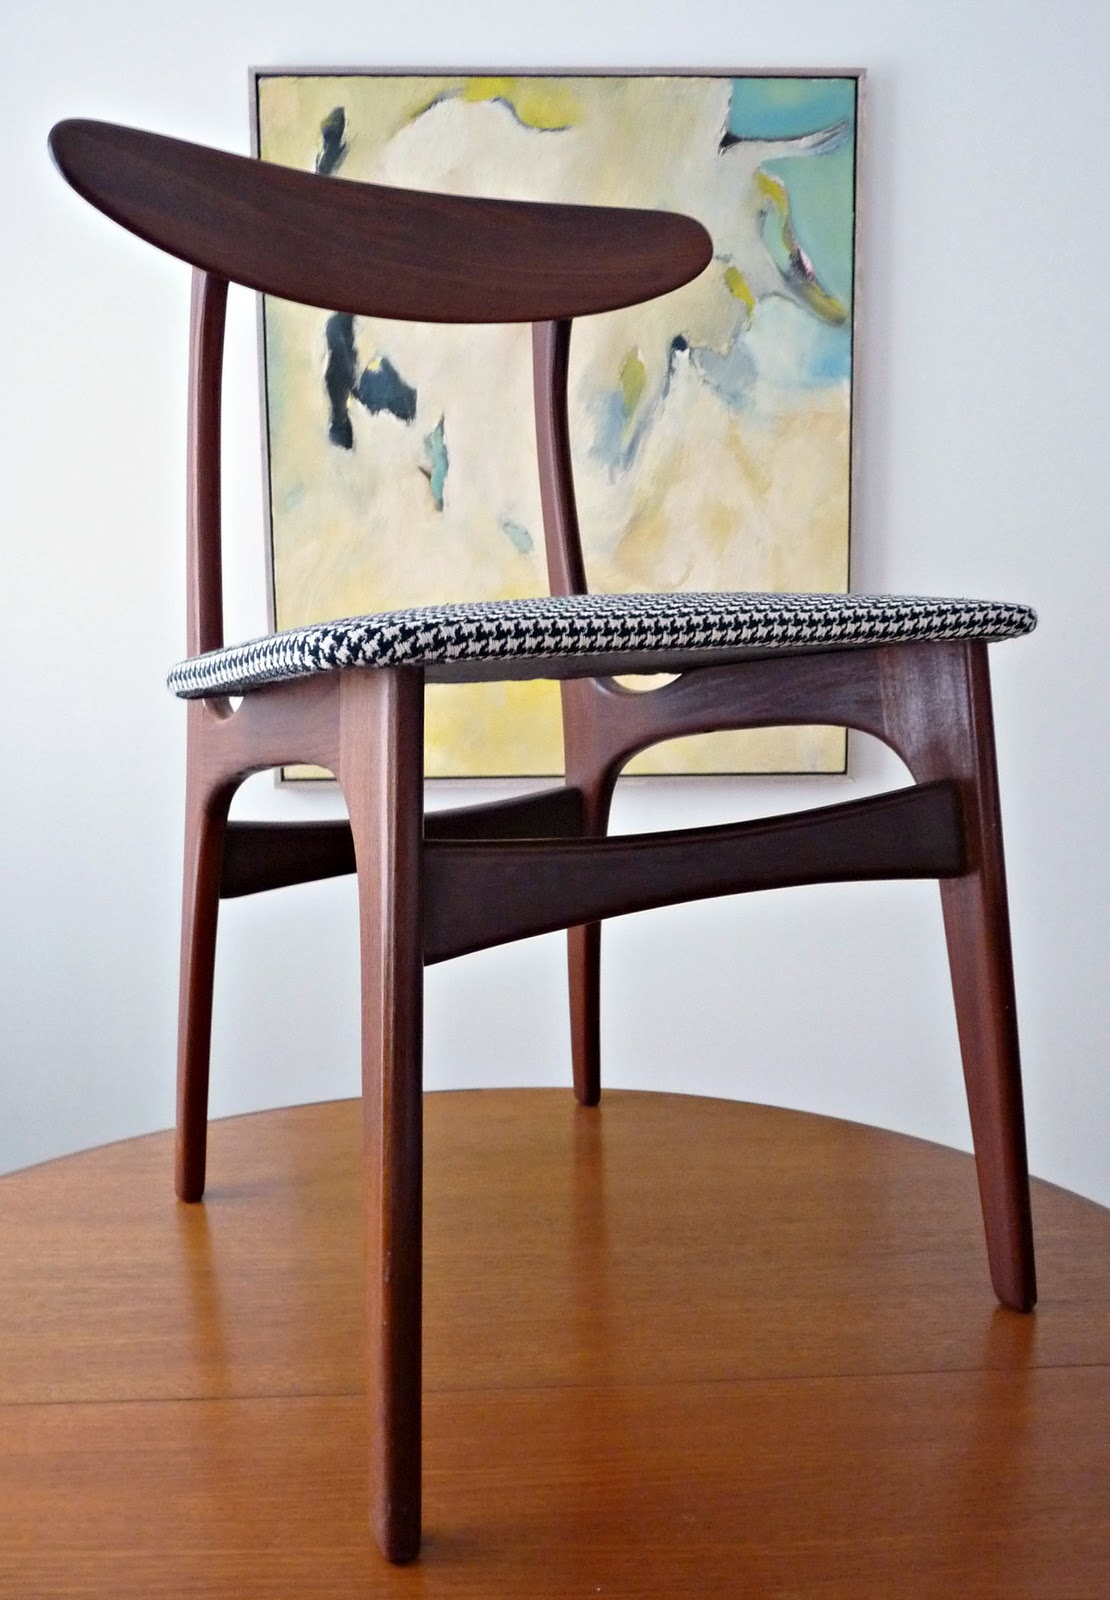 How to reupholster chair seat